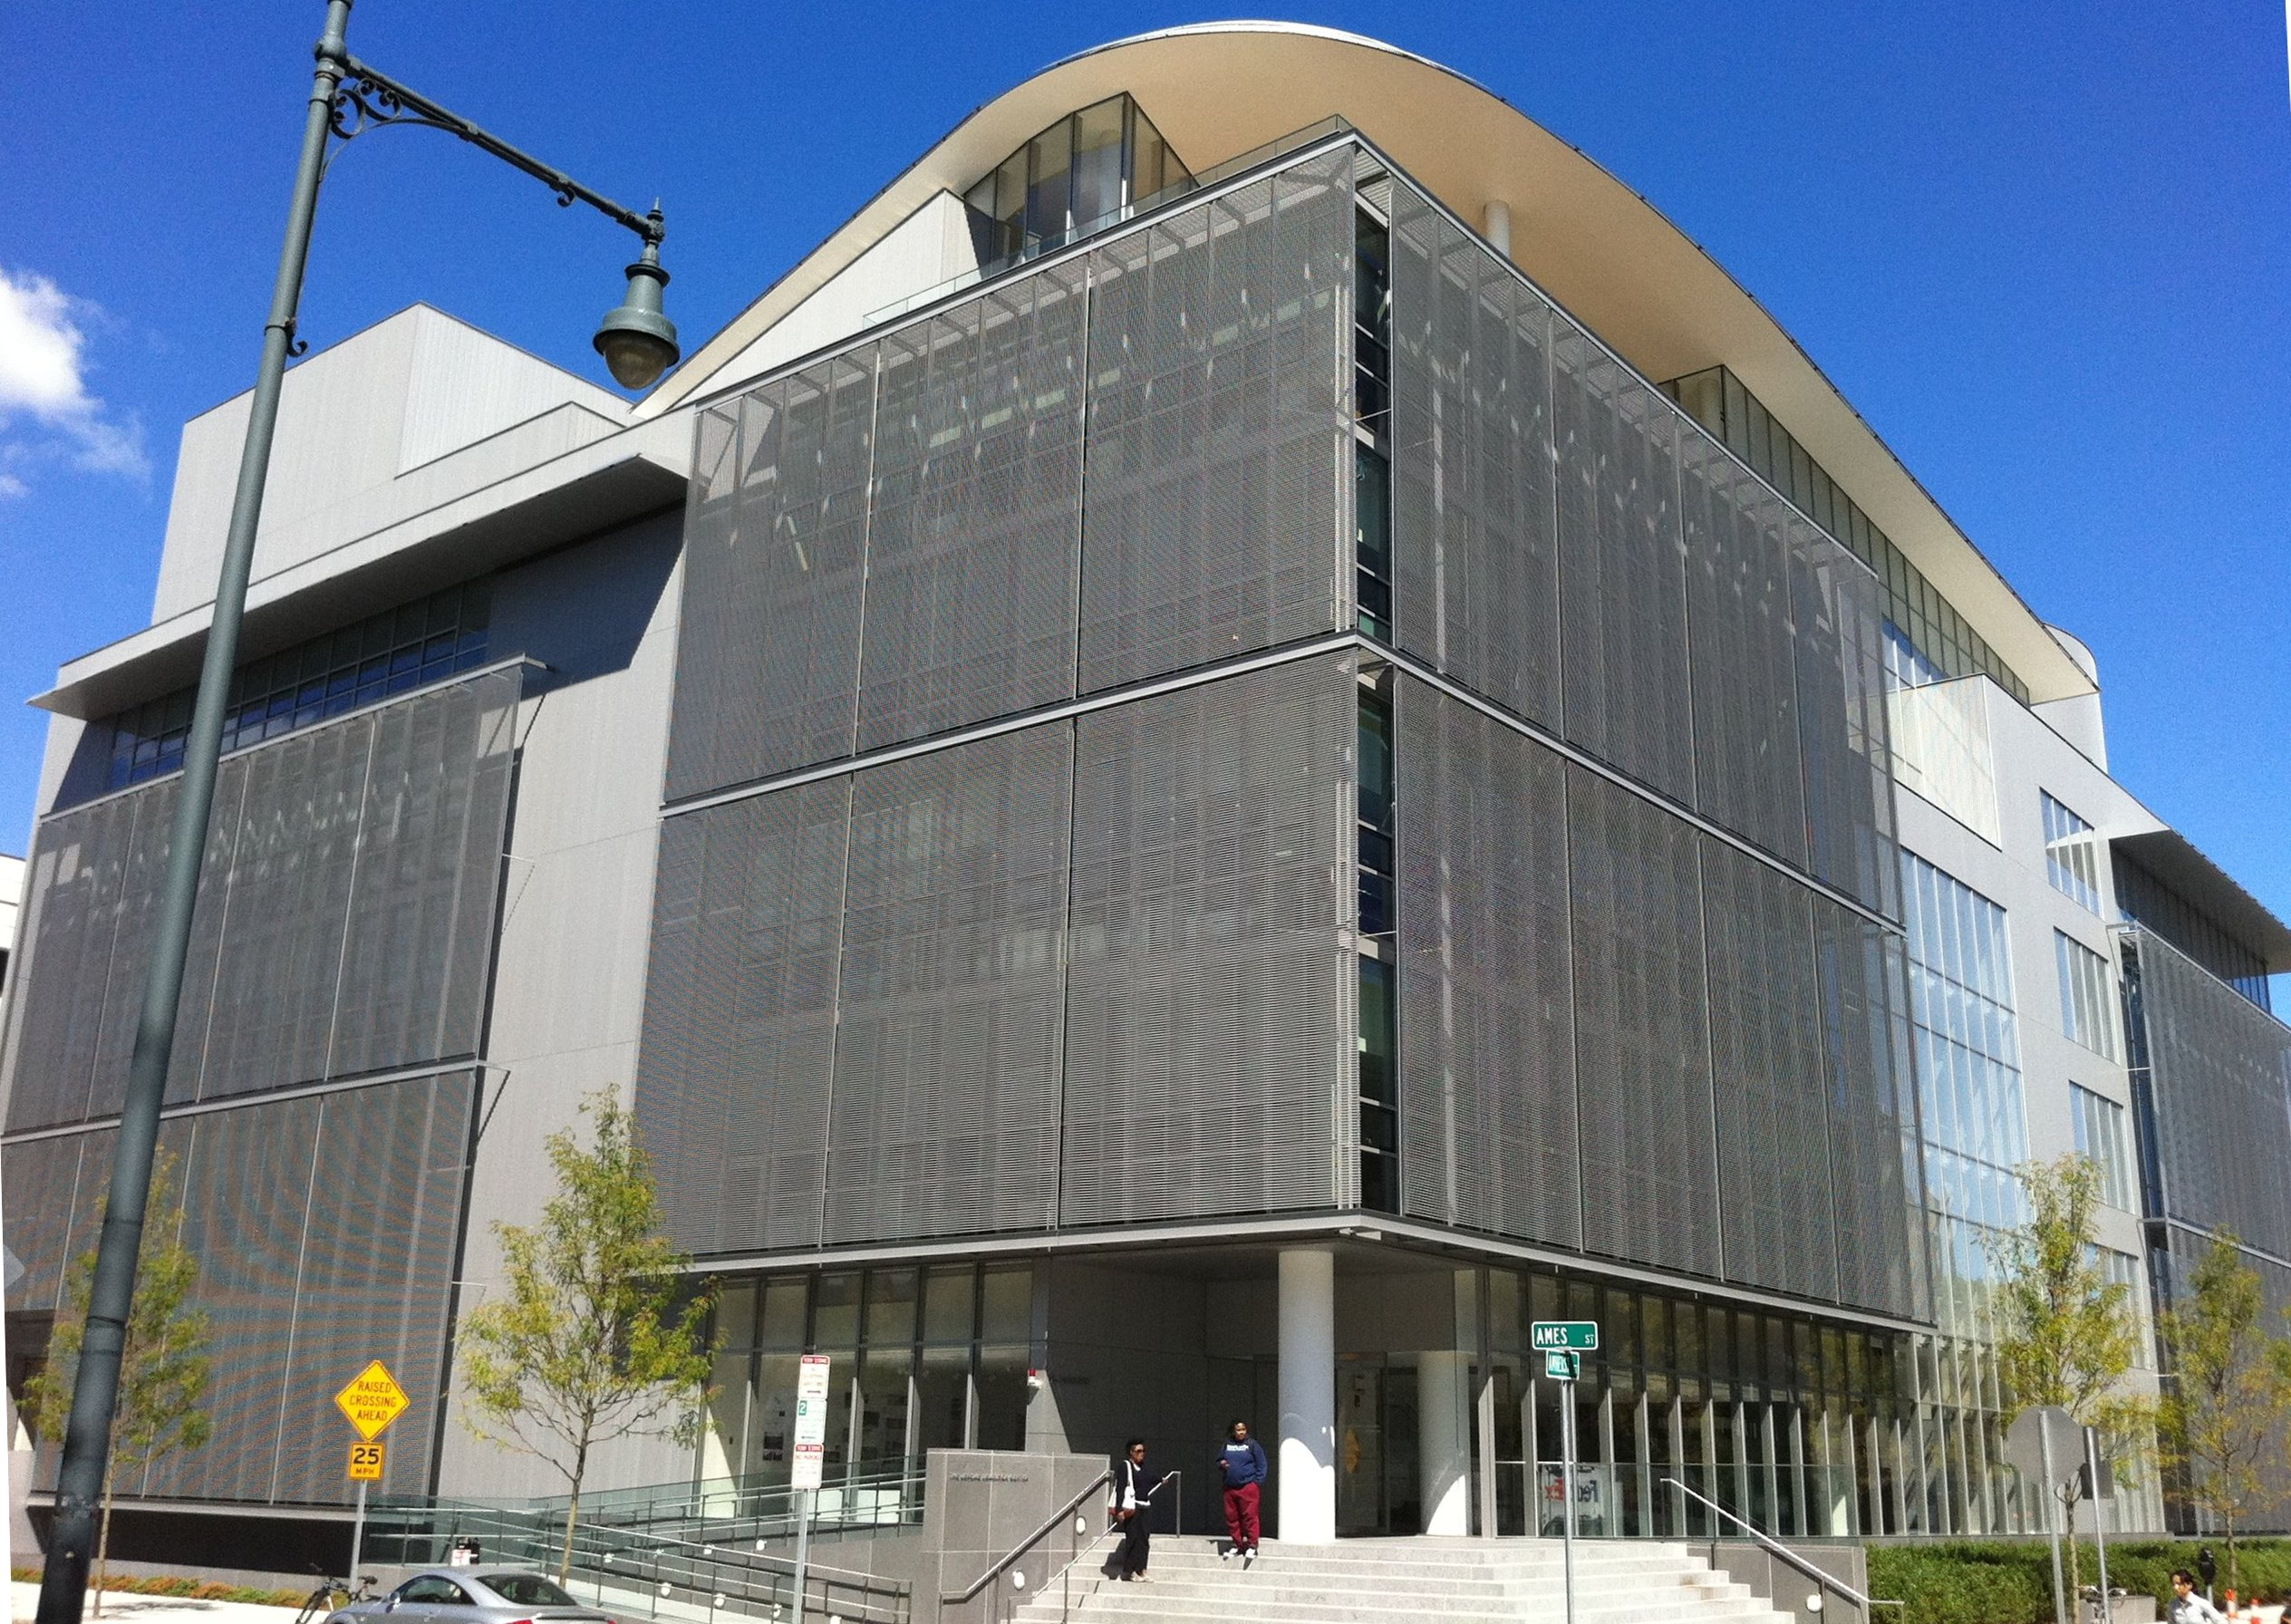 File:MIT Media Lab new building.jpg - Wikipedia, the free encyclopedia